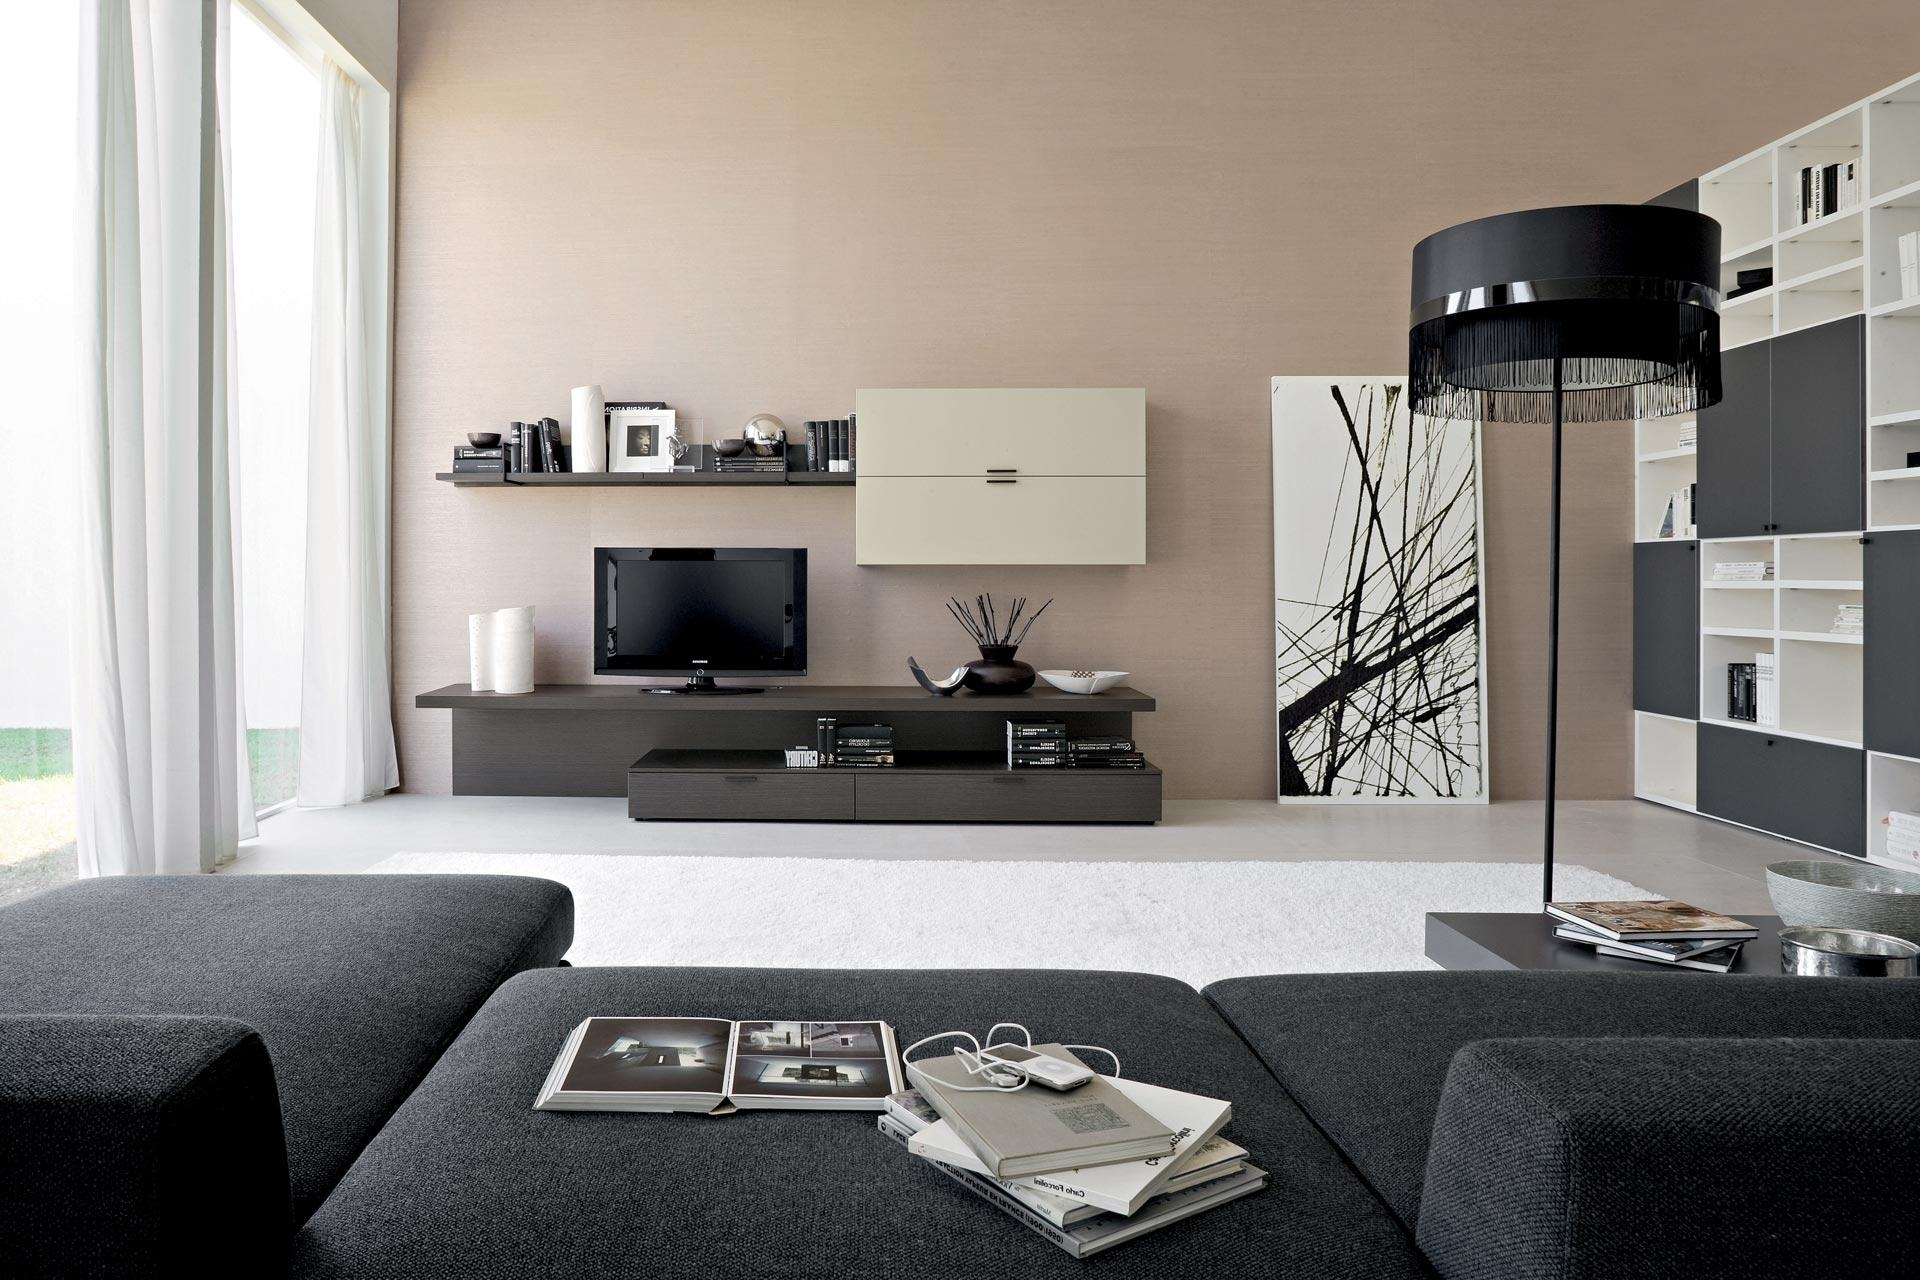 Bedroom : Modern Bachelor Pad Bachelor Bedroom Ideas Mens Bedroom With Wall Art For Mens Bedroom (View 15 of 20)